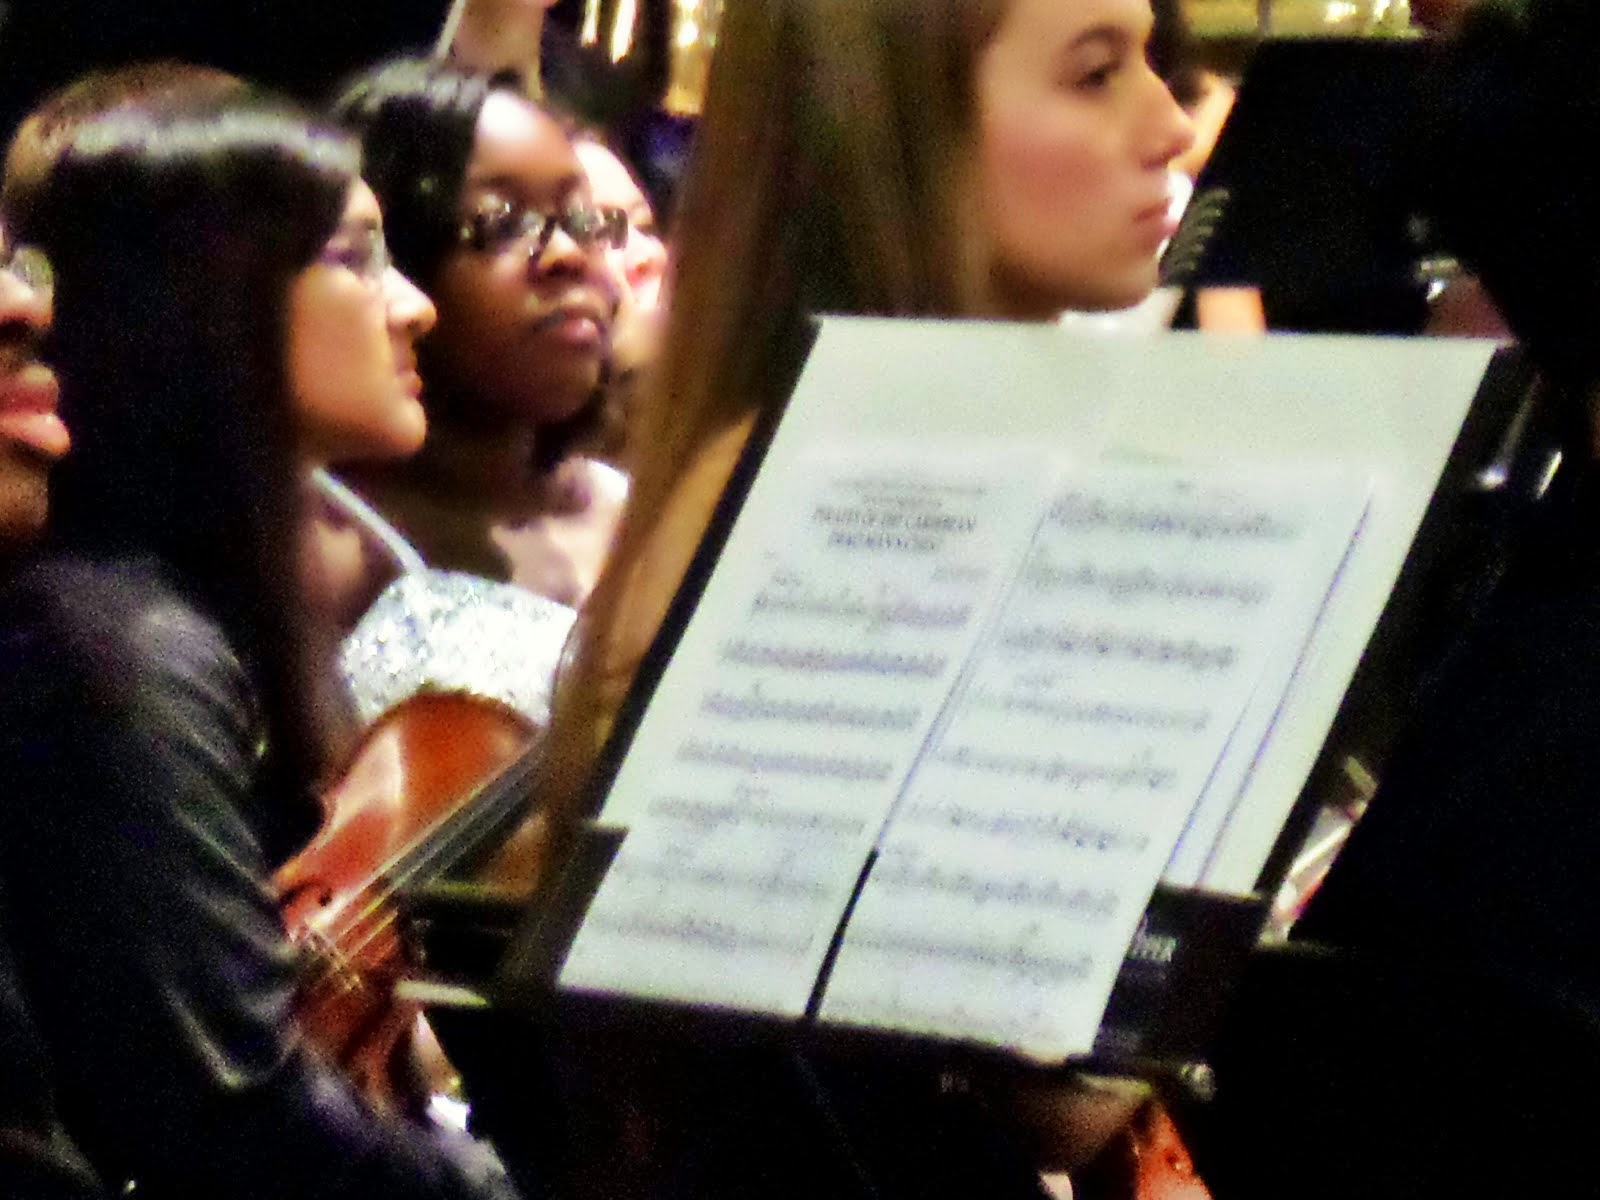 Metropolitan Youth Symphony Orchestras of Atlanta